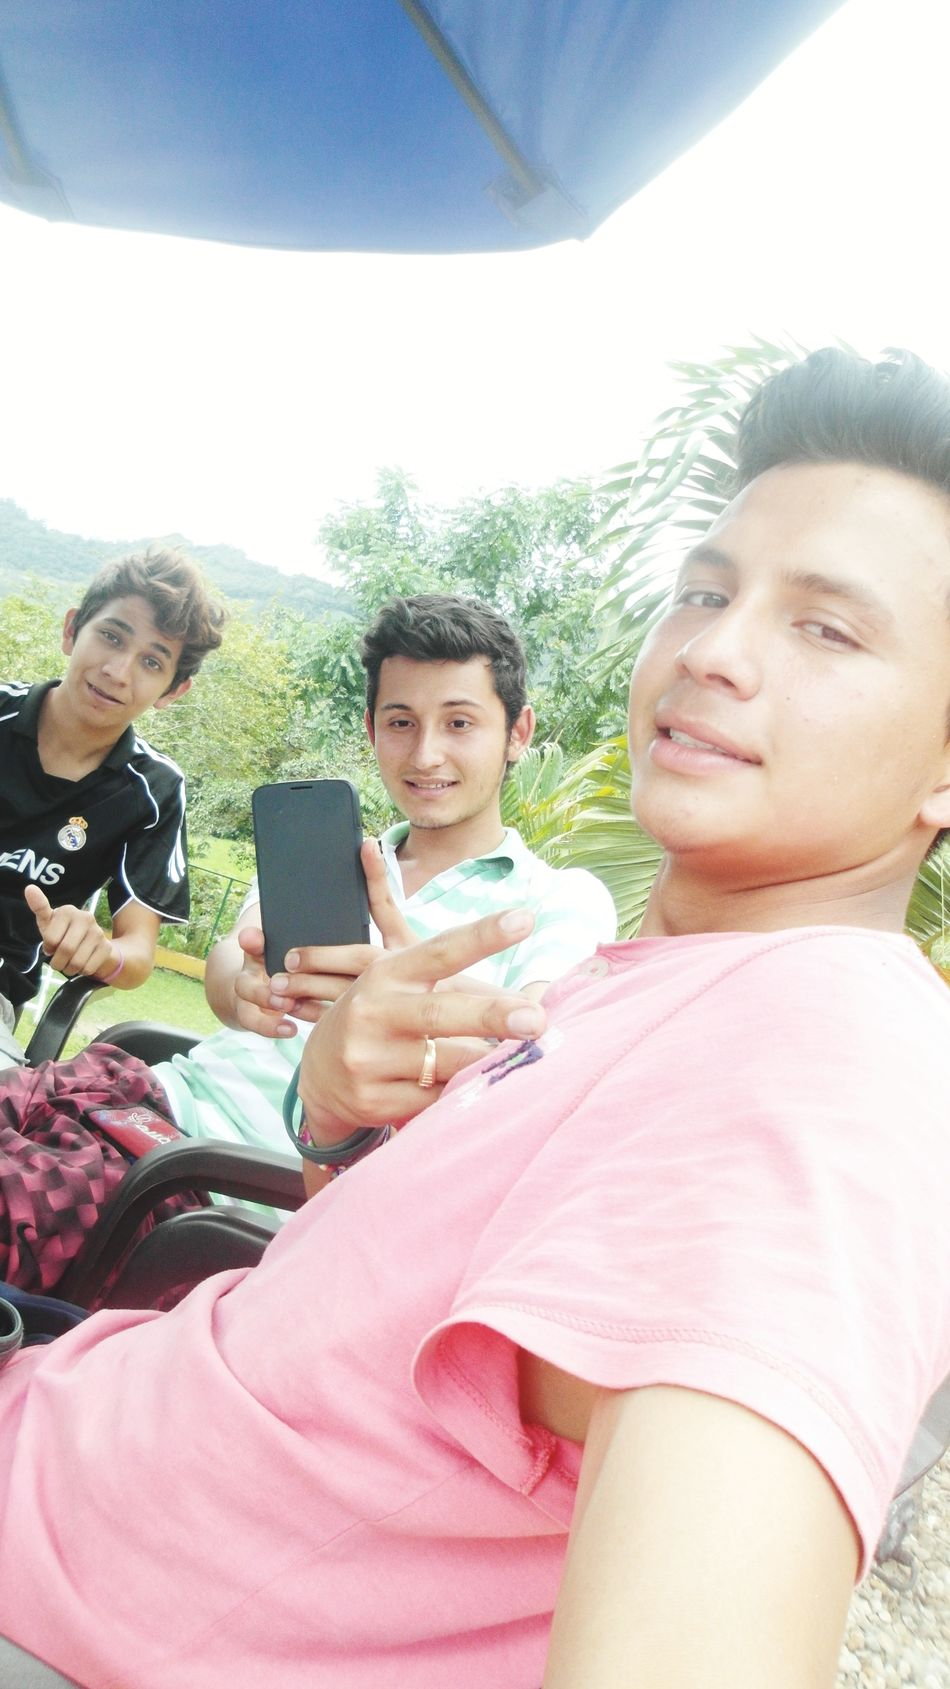 Friends Papos Hi! On Vacation